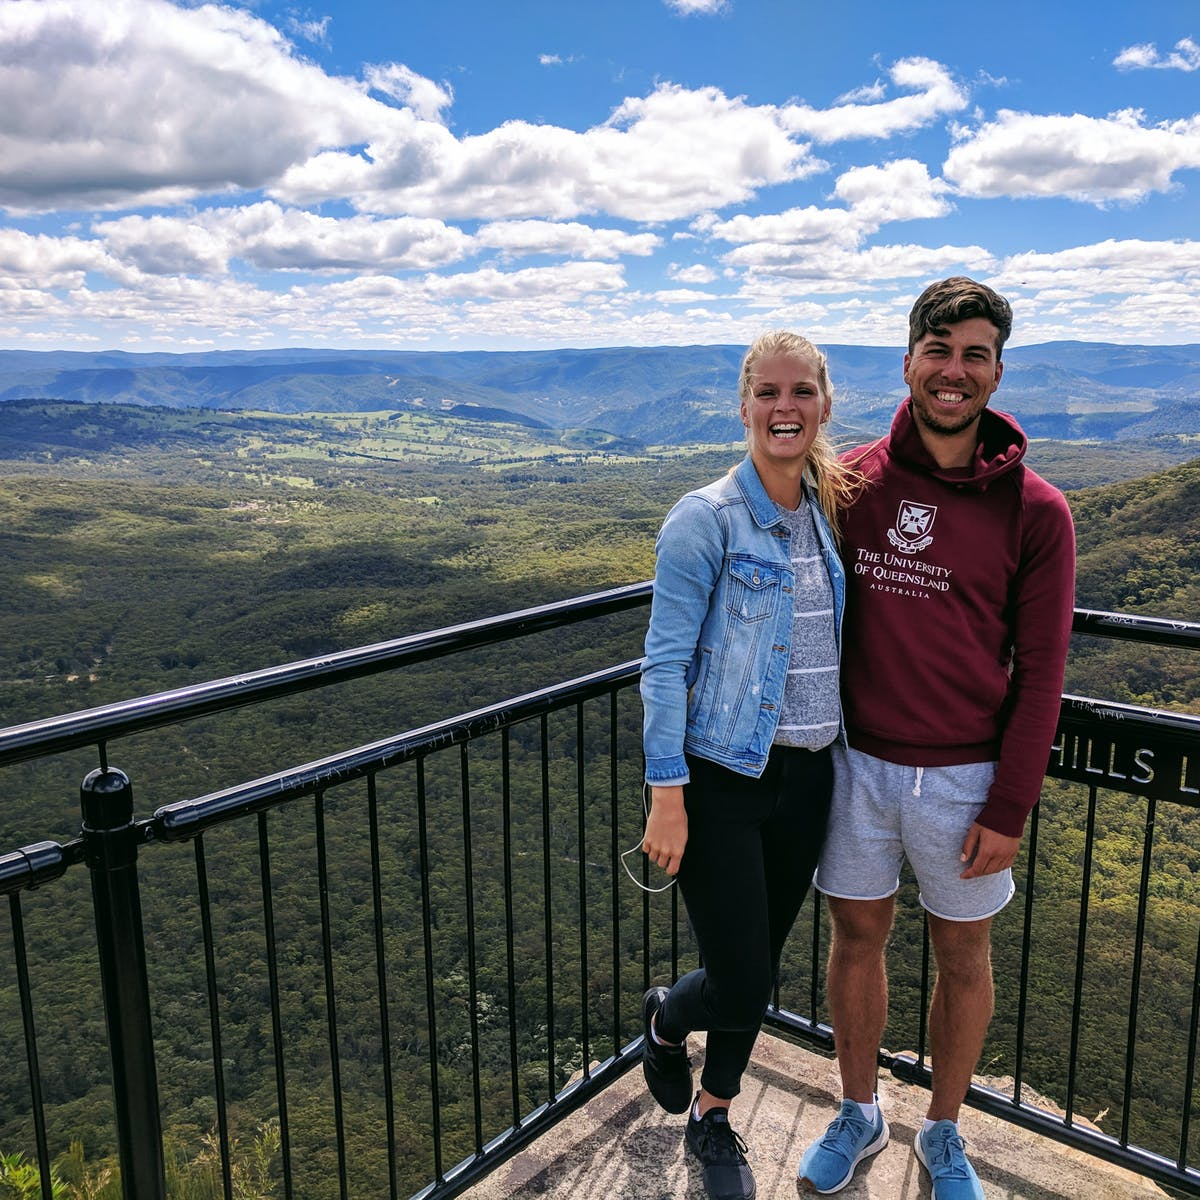 Us in the Blue Mountains, Australia (2018)